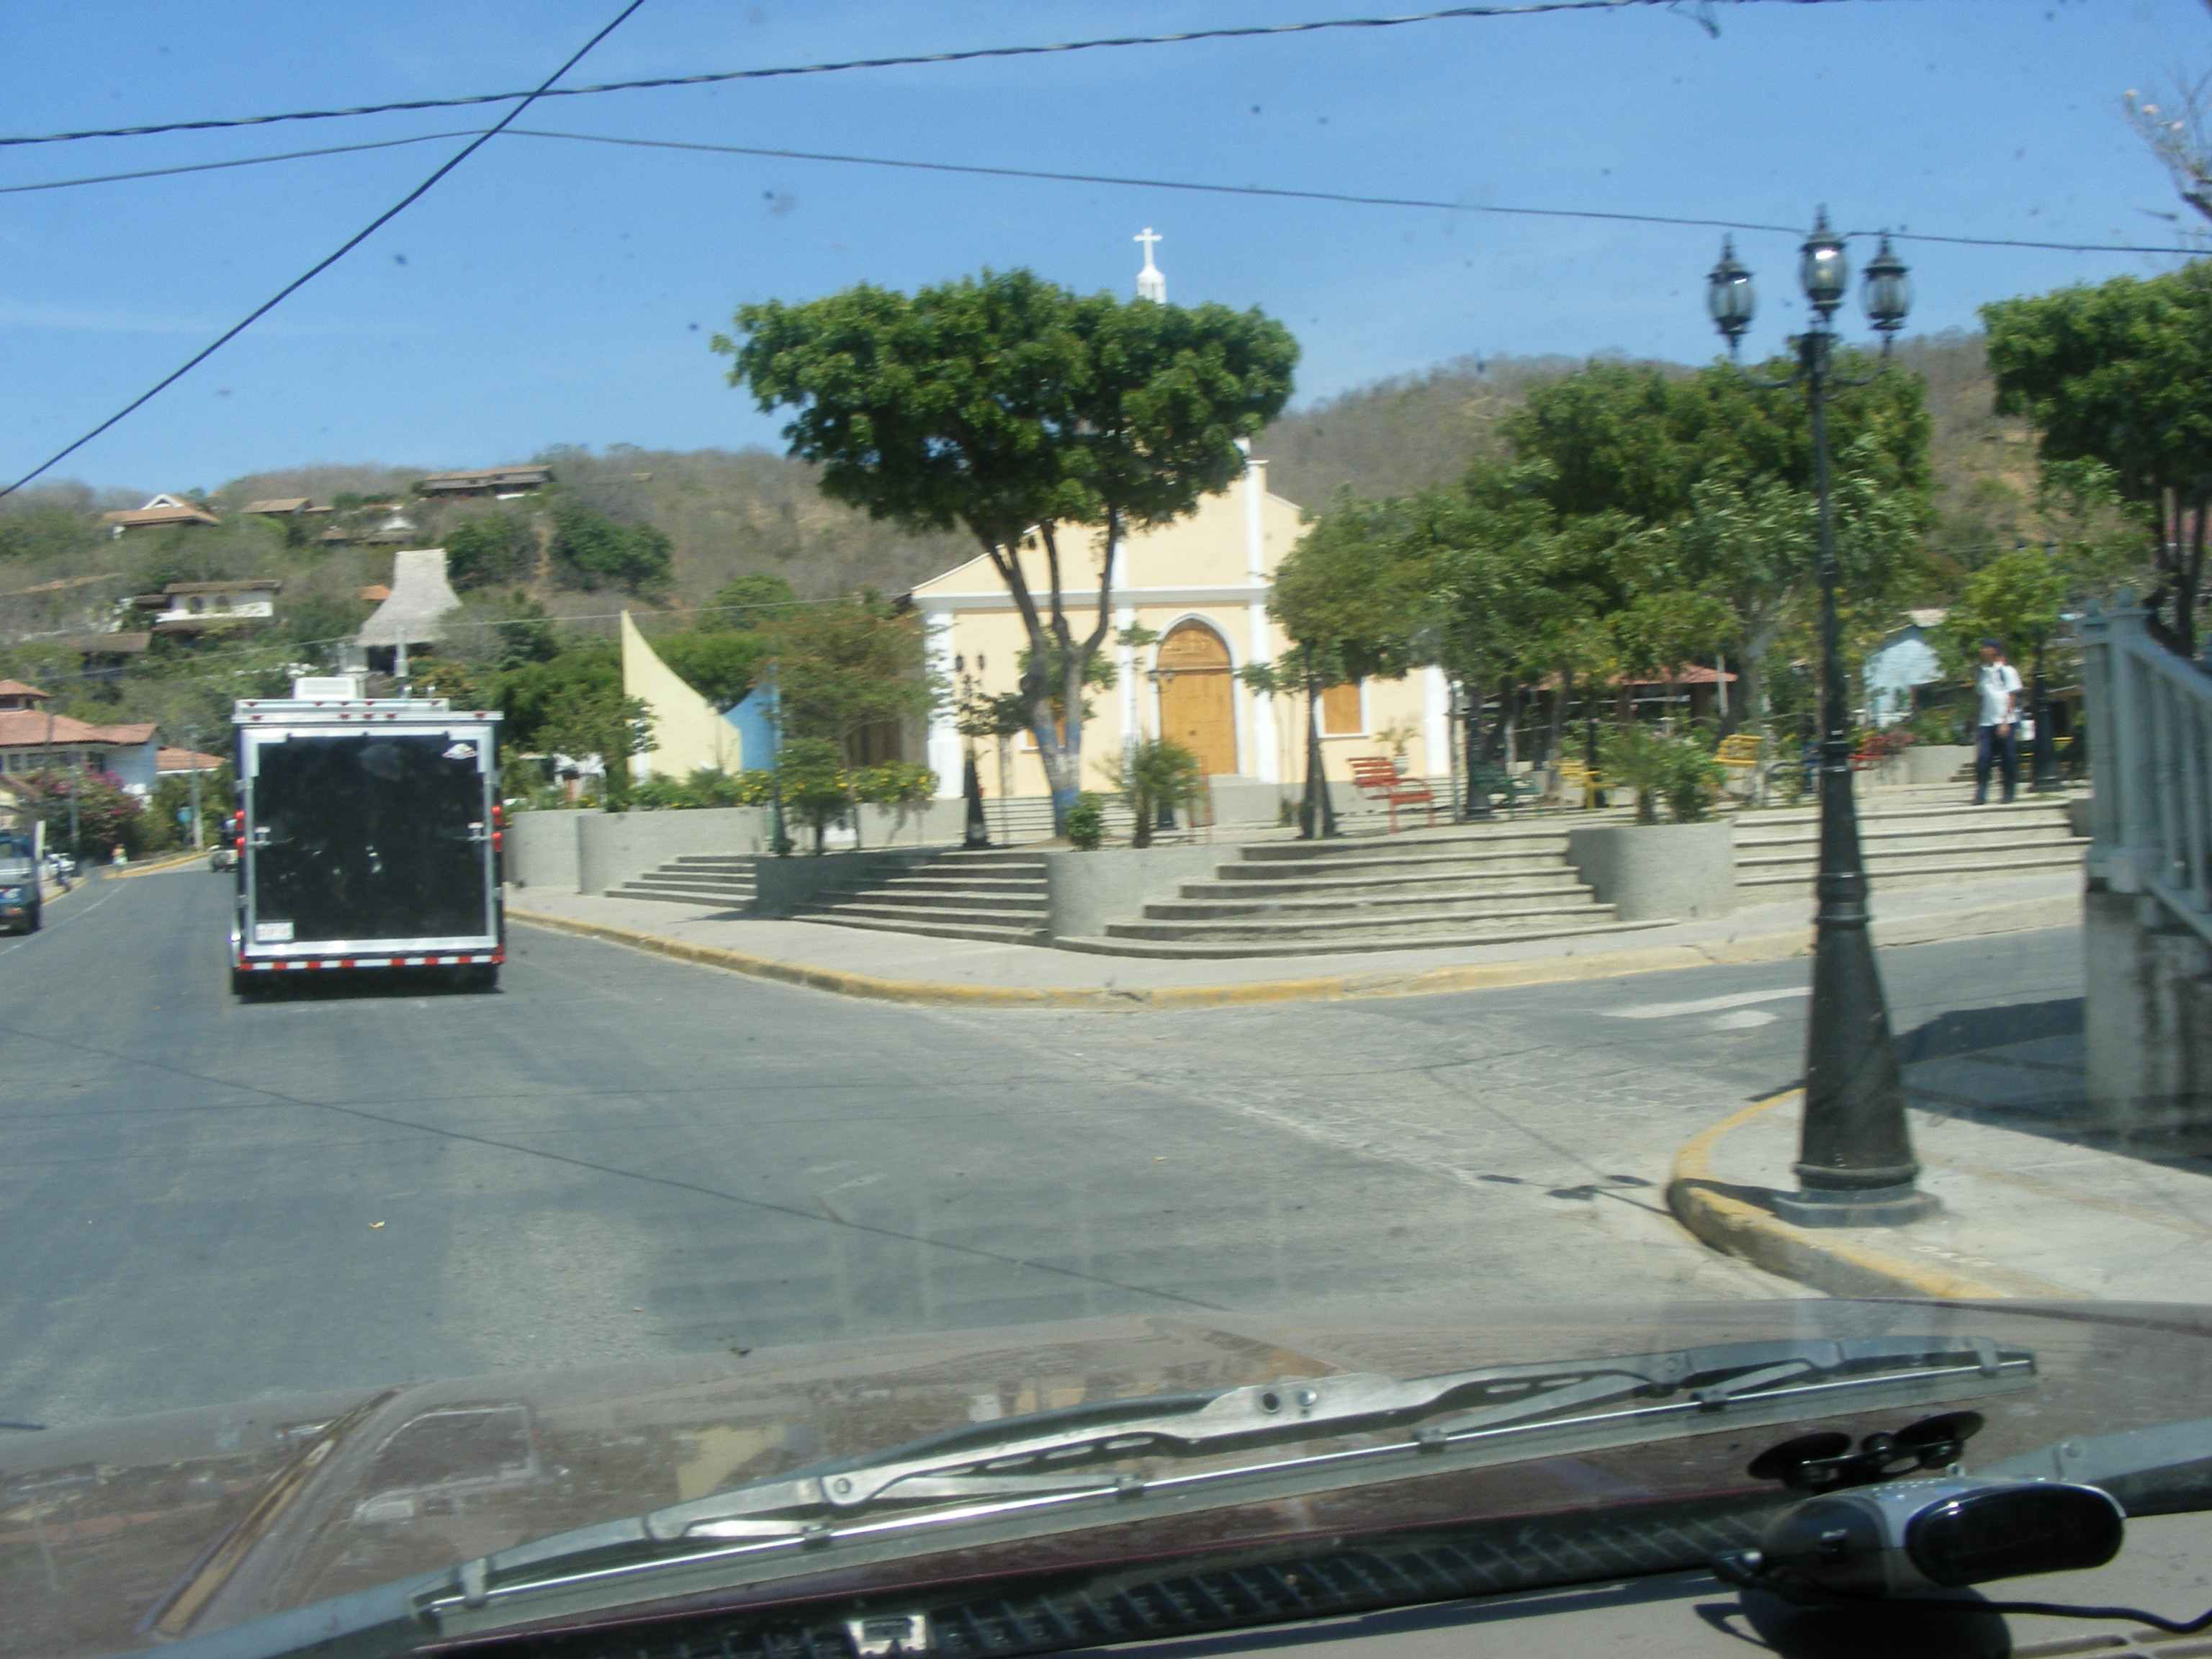 Leaving San Juan del Sur